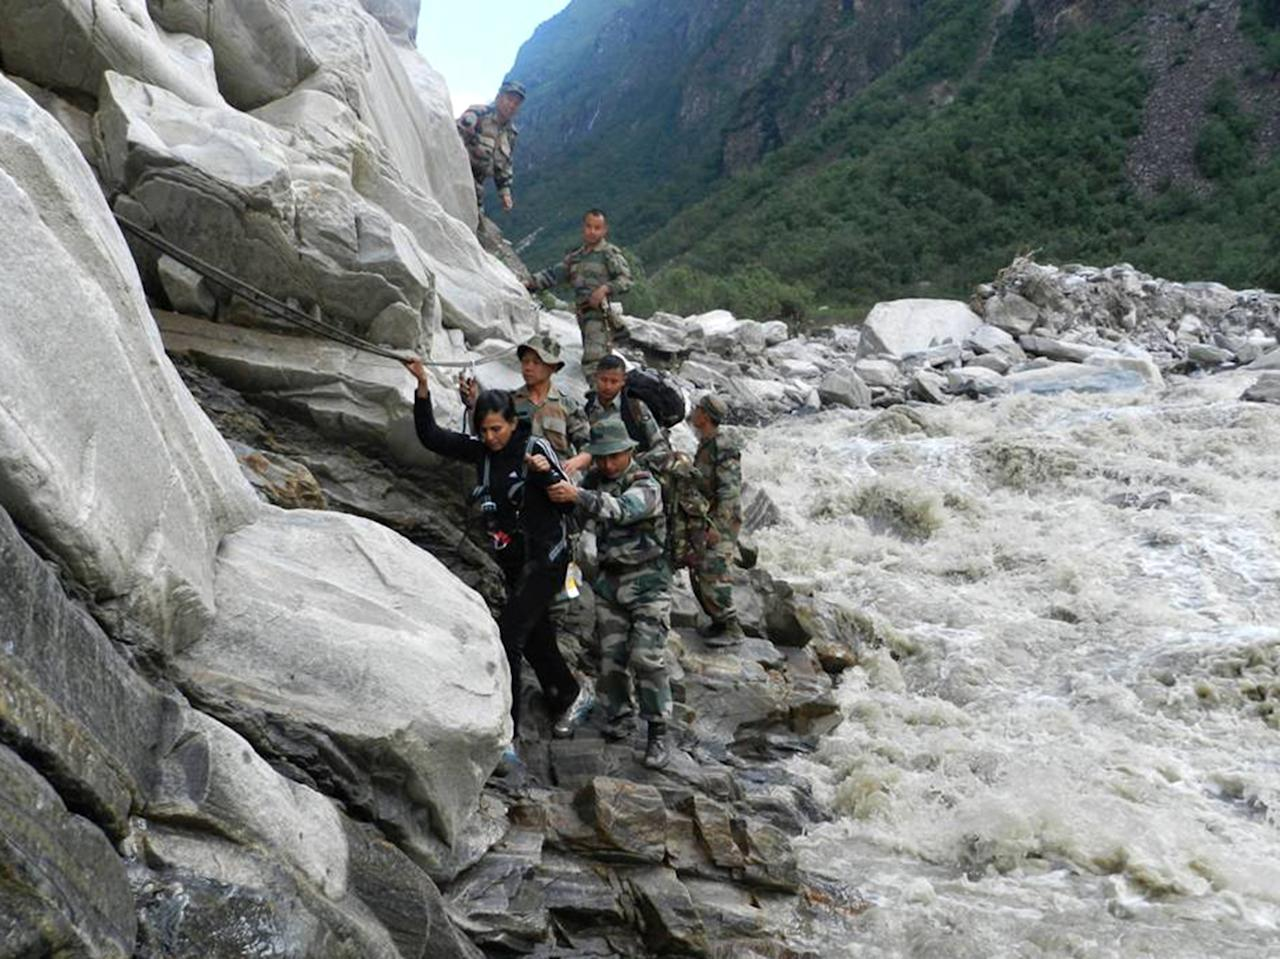 In this handout photograph received from the Ministry of Defence (MOD) on June 27, 2013, Indian defence personnel assist a stranded civilian to safety beside a raging river near the Pindari Glacier area of northern Uttarakhand state.  Rescue workers stepped up the search for bodies June 27 in India's flood ravaged north, as mass cremations of victims already discovered got underway amid fears of outbreaks of disease , officials and reports said.   AFP PHOTO / MOD